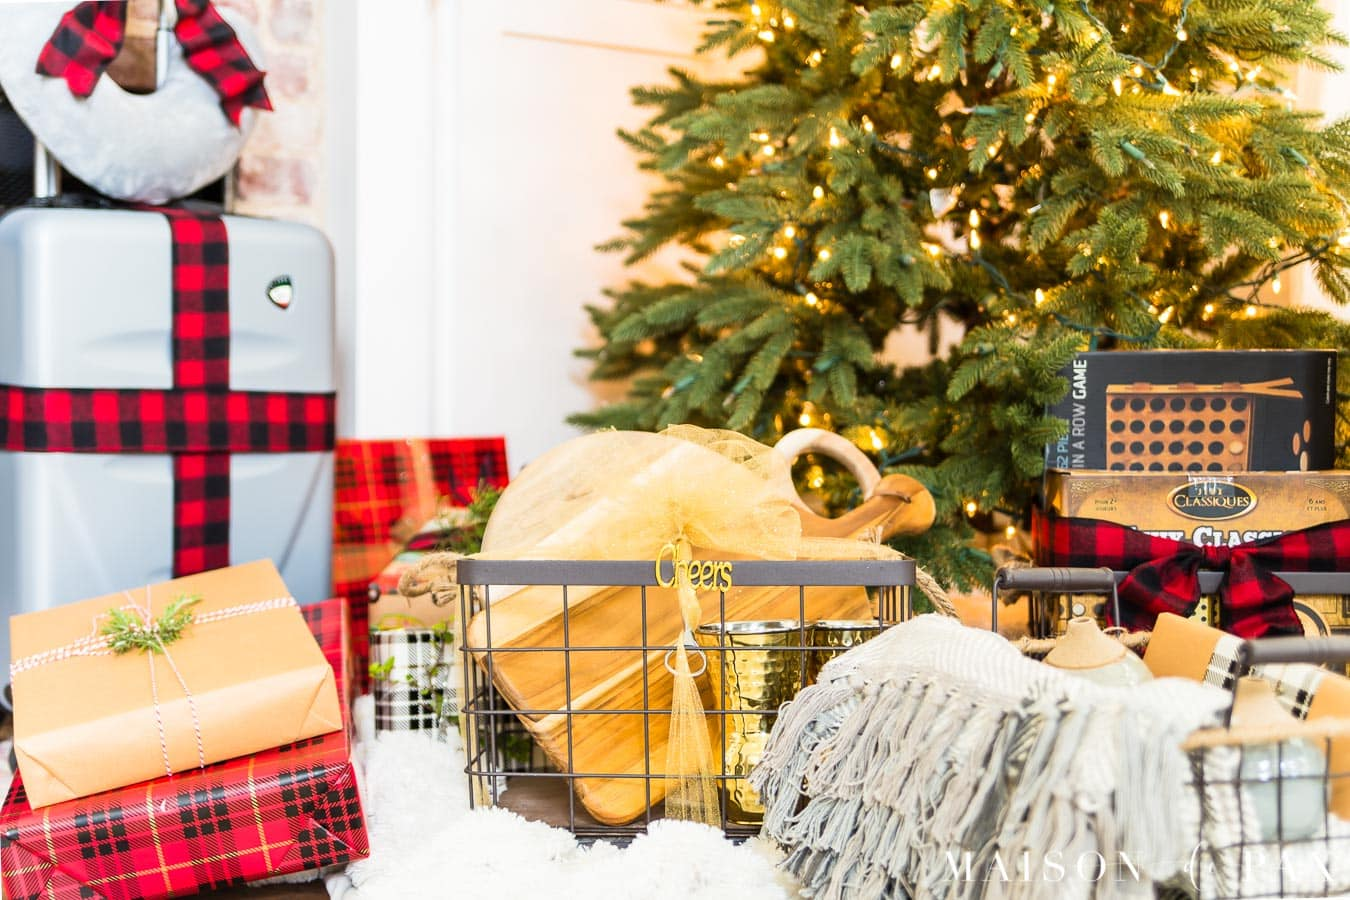 gift baskets and presents wrapped under Christmas tree | Maison de Pax